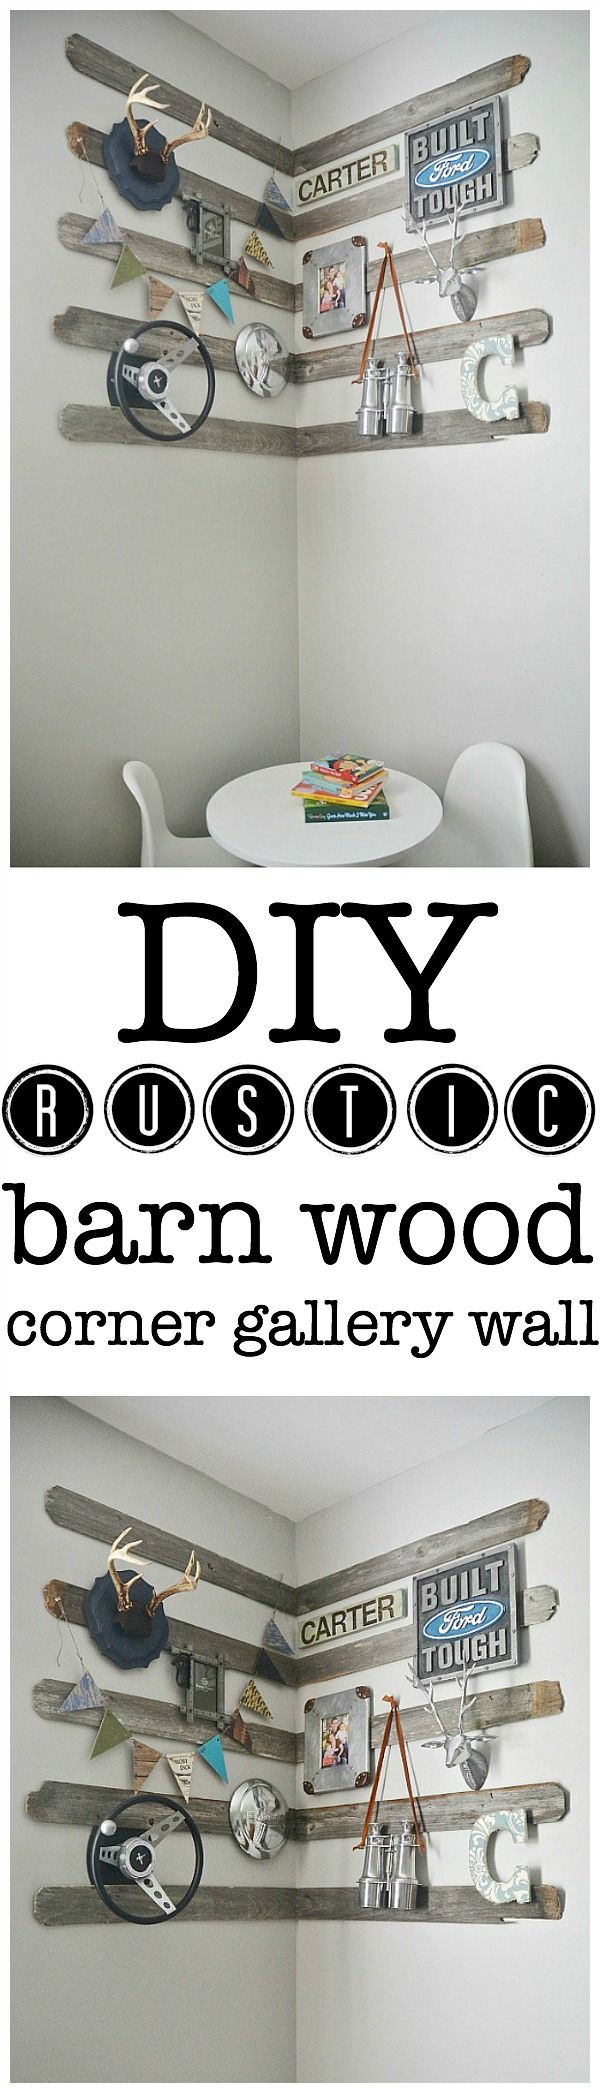 DIY corner gallery wall for a boys room using old barn wood, antlers, & other rustic details. The perfect focal point for any room & so easy...: Gallery Walls, Corner Gallery Wall, Wood Corner, Diy Rustic, Boys Room, Rustic Barns, Barns Wood, Diy Corner, Barn Wood